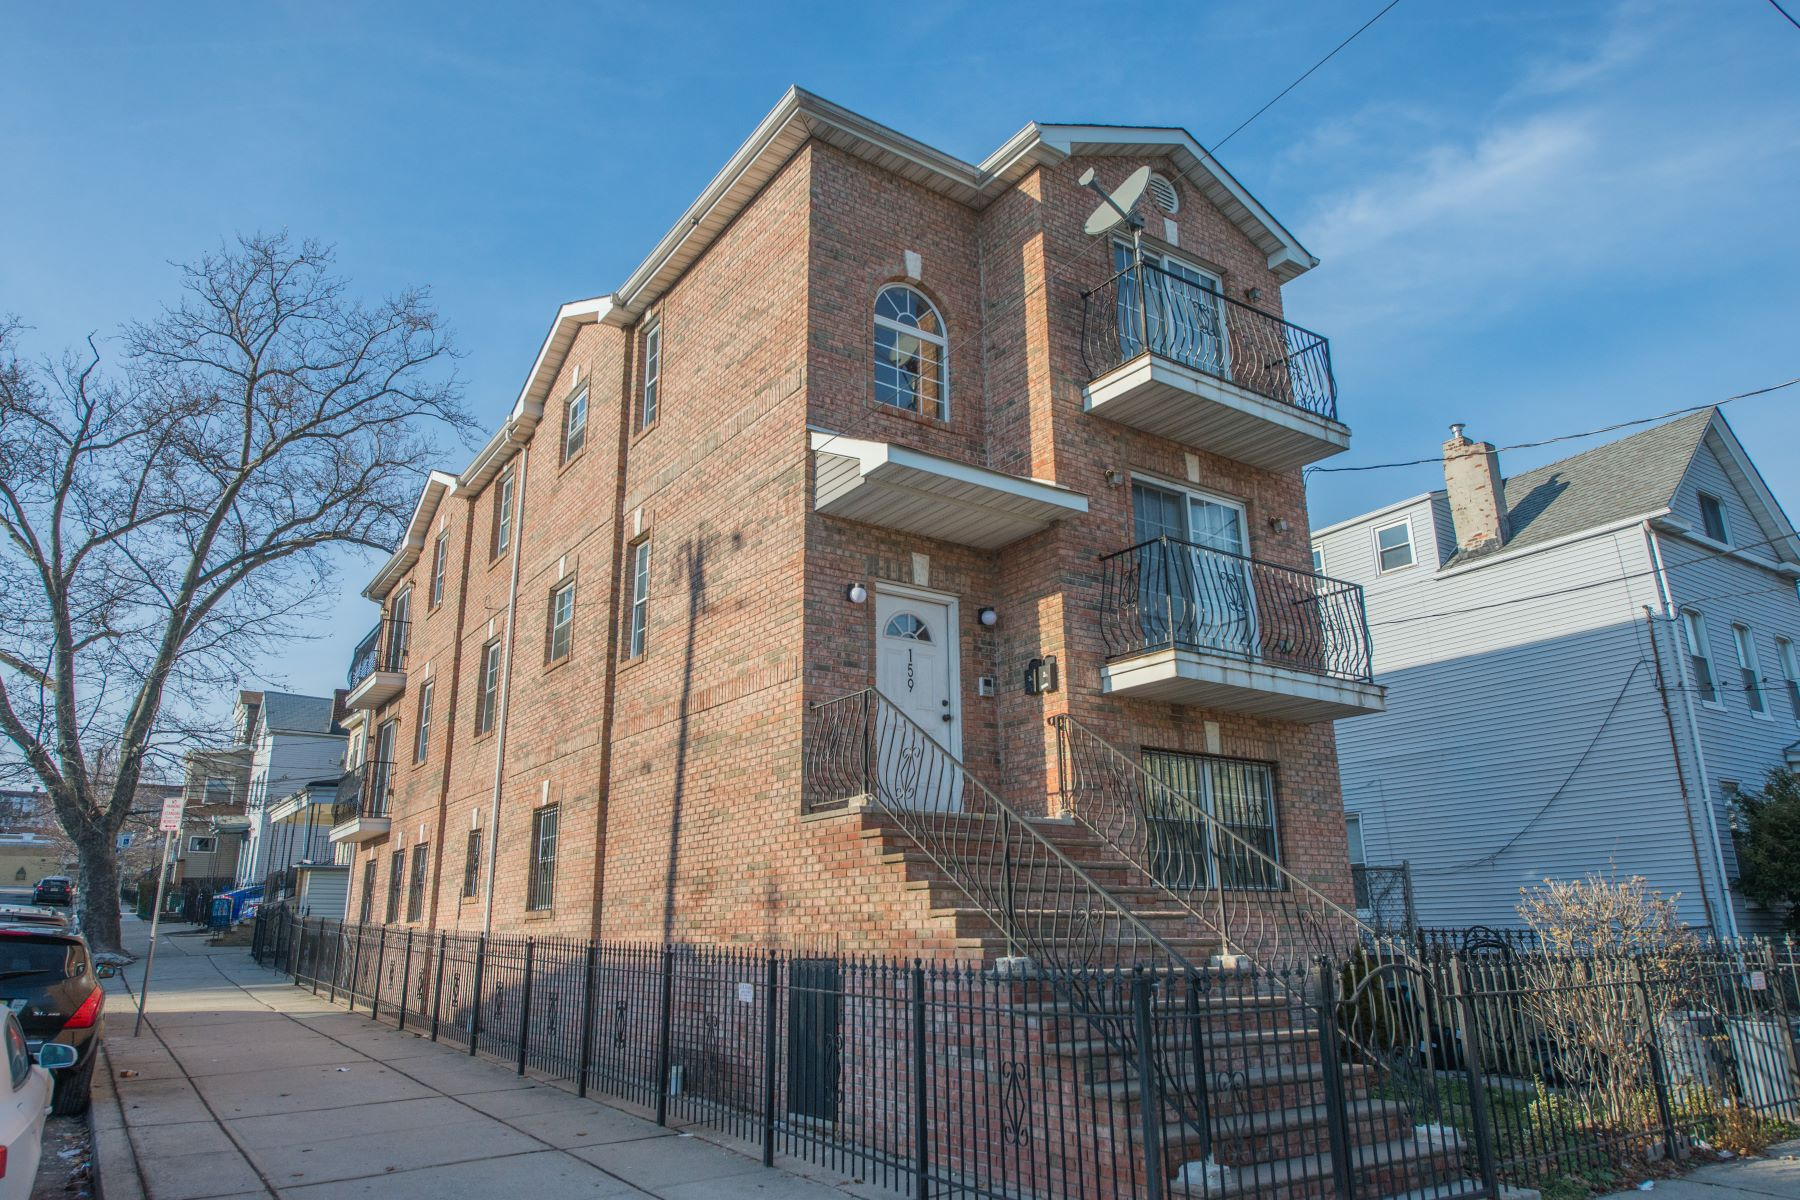 Single Family Home for Sale at Welcome to your next investment property. This home has so many options 159 Sherman Avenue Newark, 07114 United States